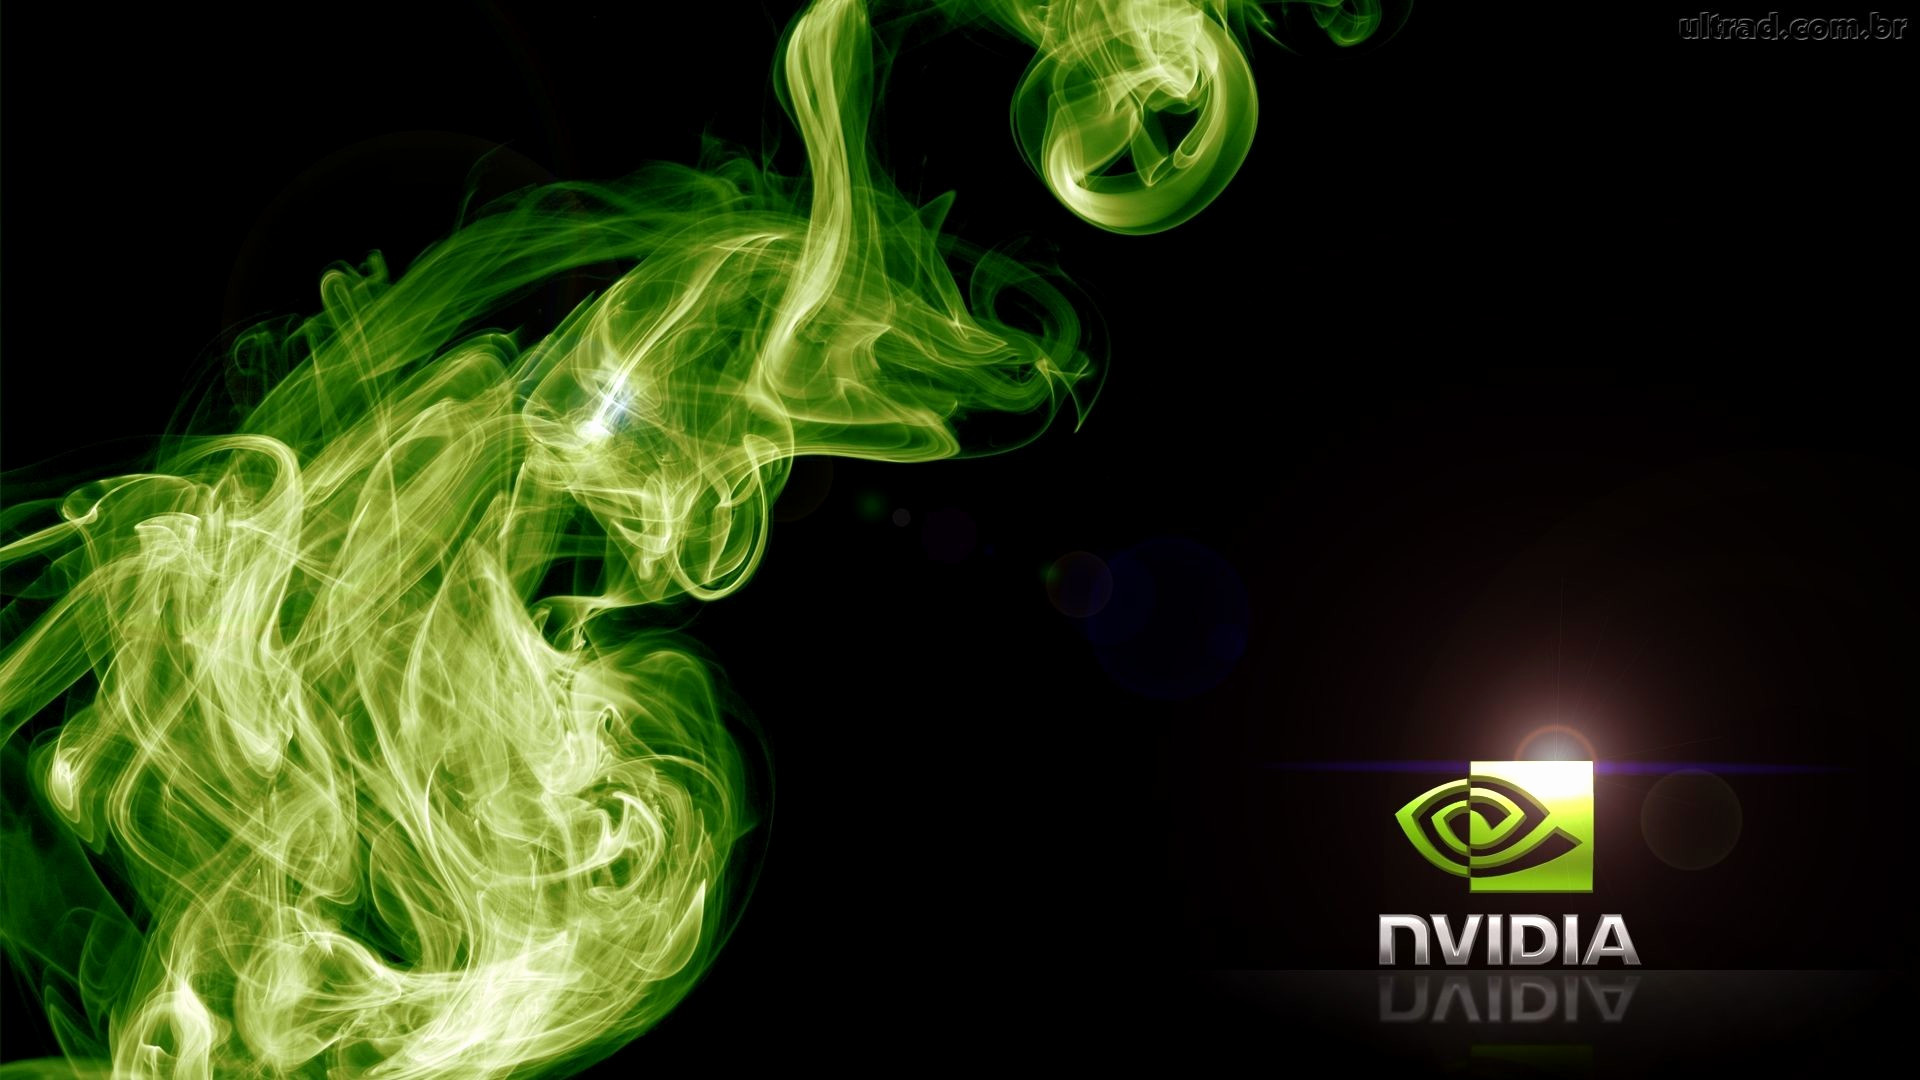 Nvidia wallpapers 85 background pictures - 1920x1080 wallpaper nvidia ...